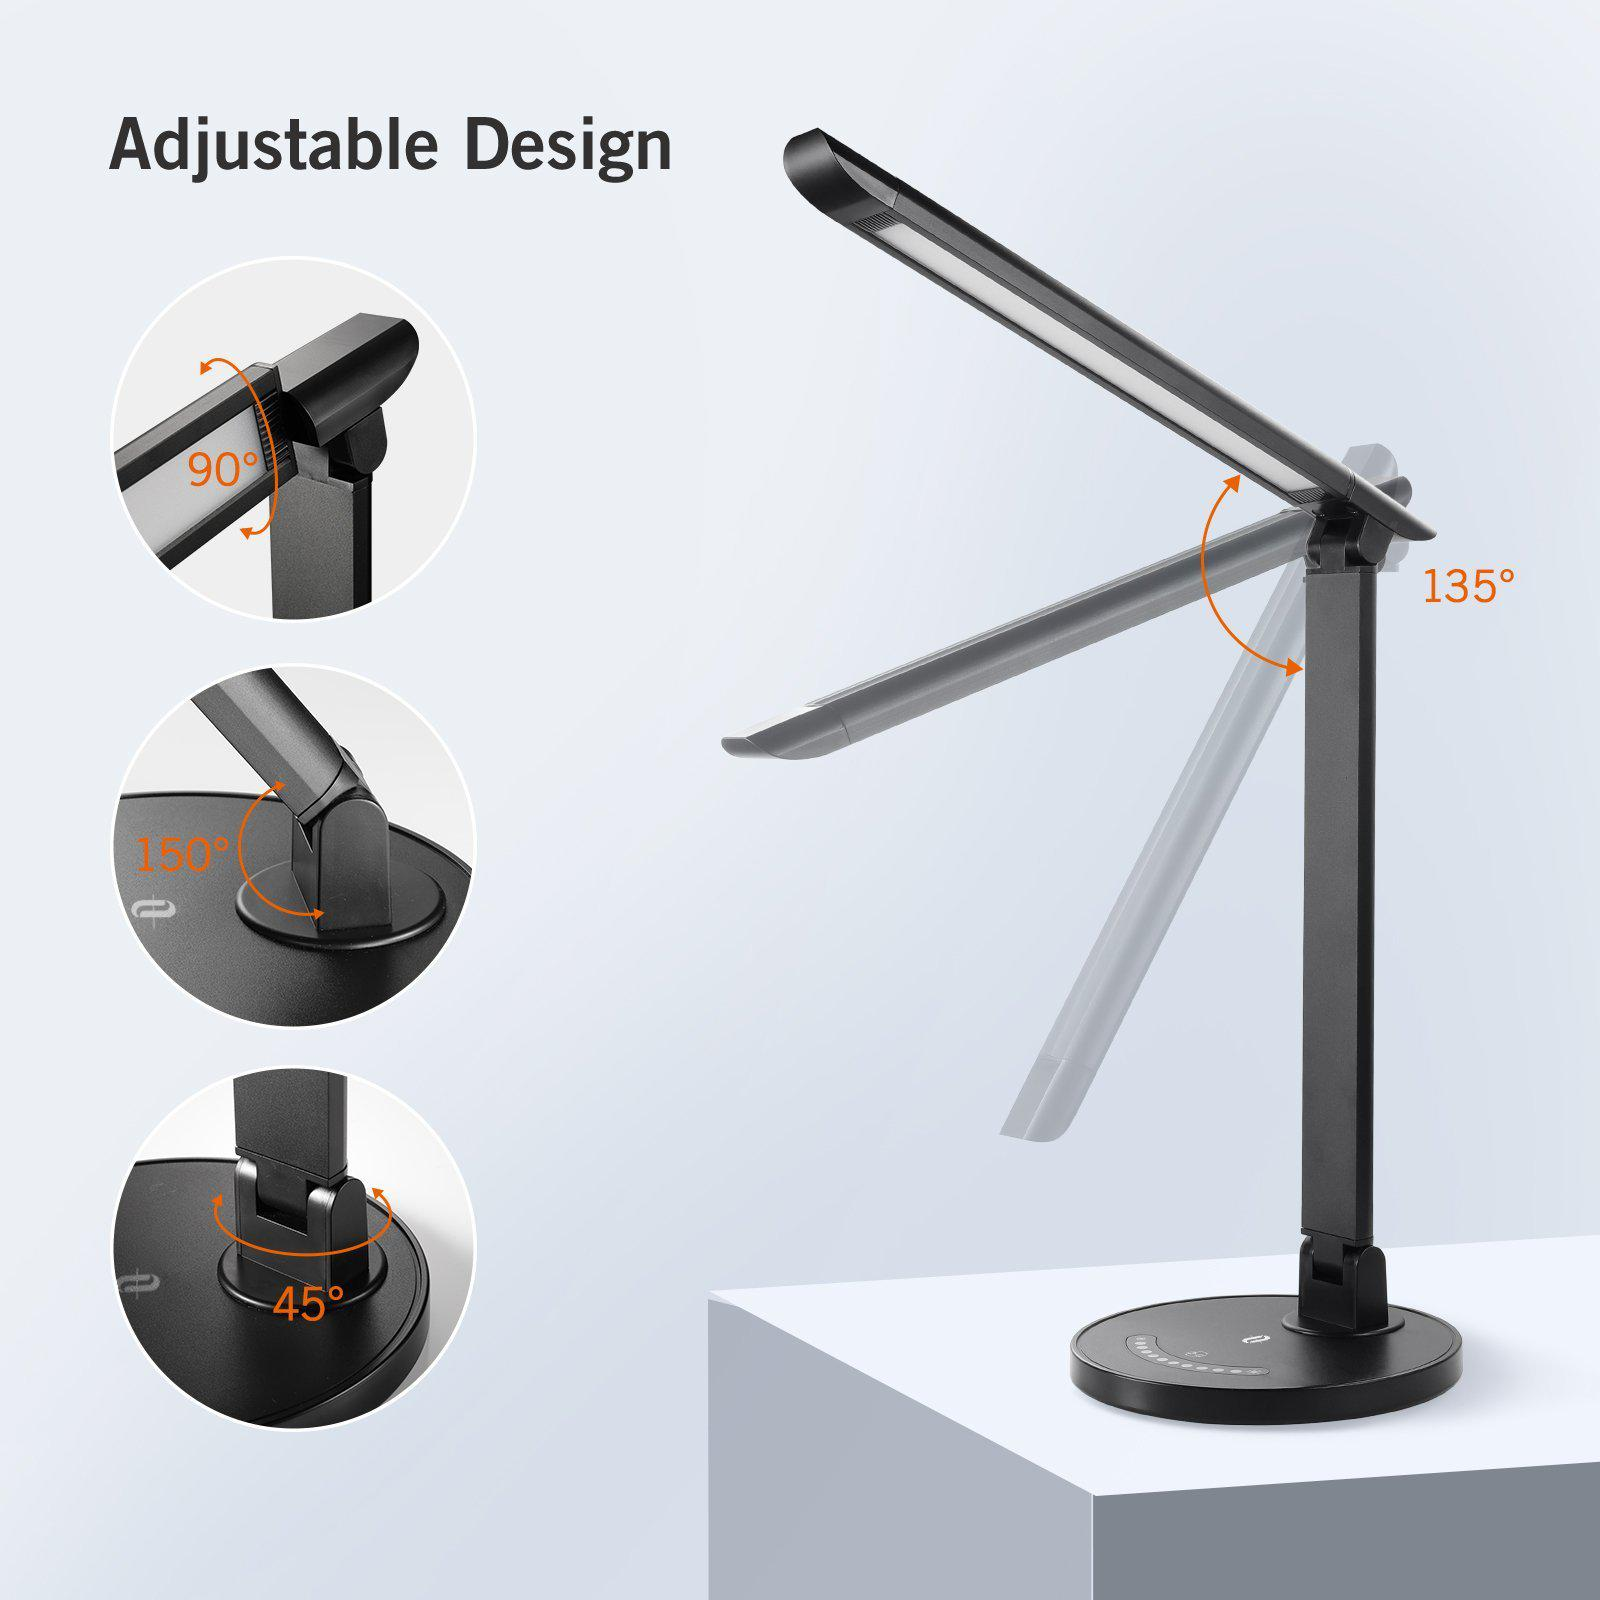 Dimmable Office Lamp with USB Charging Port TaoTronics LED Desk Lamp Eye-Caring Table Lamps 5 Color Modes Touch Control Renewed 12W Black